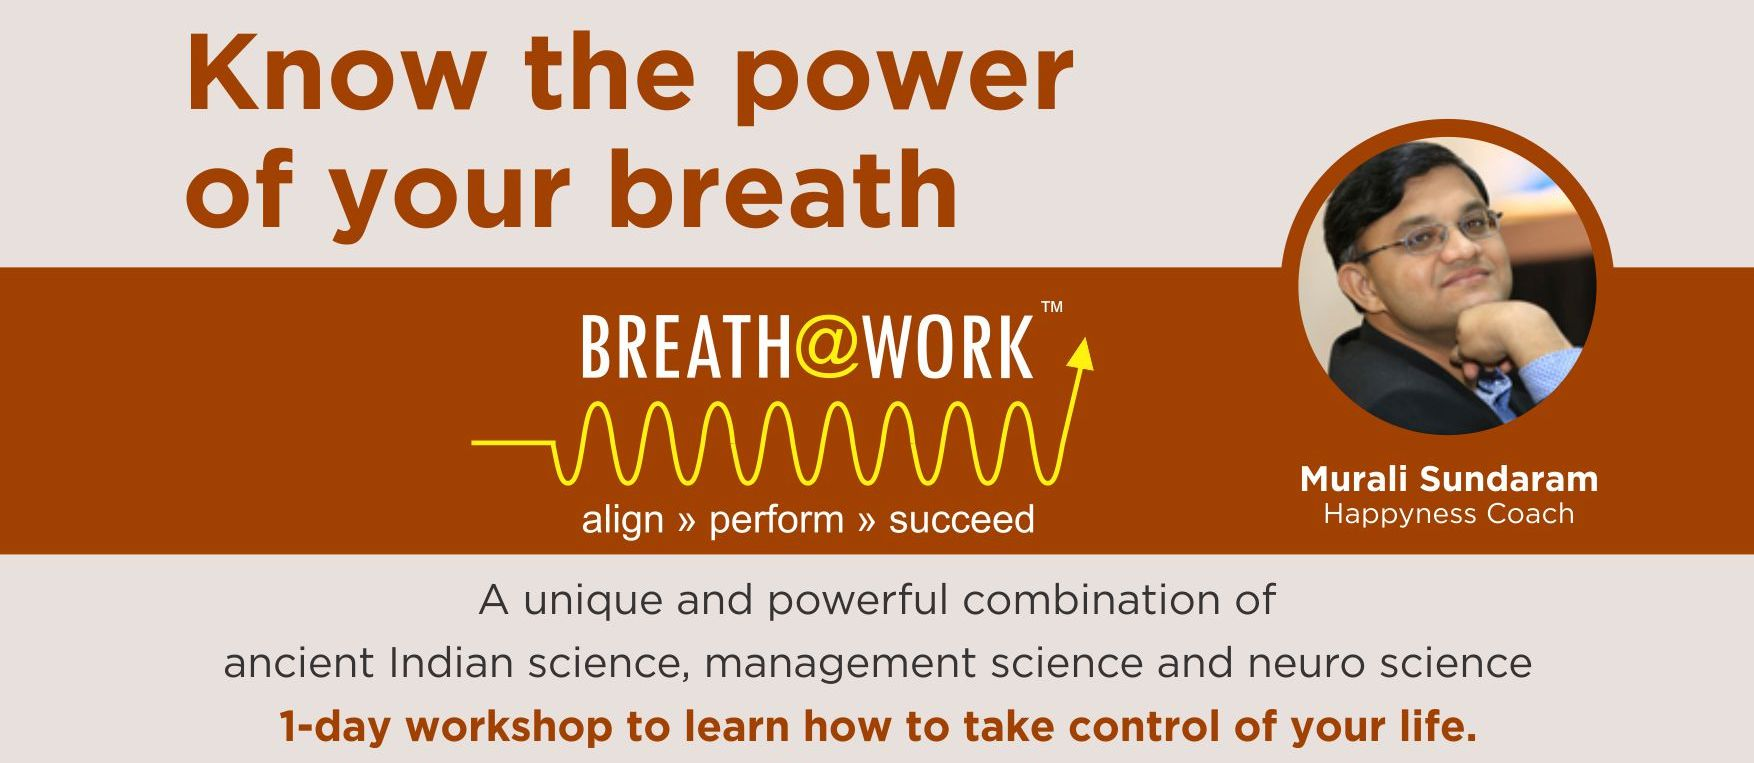 Breath-at-work-chandigarh